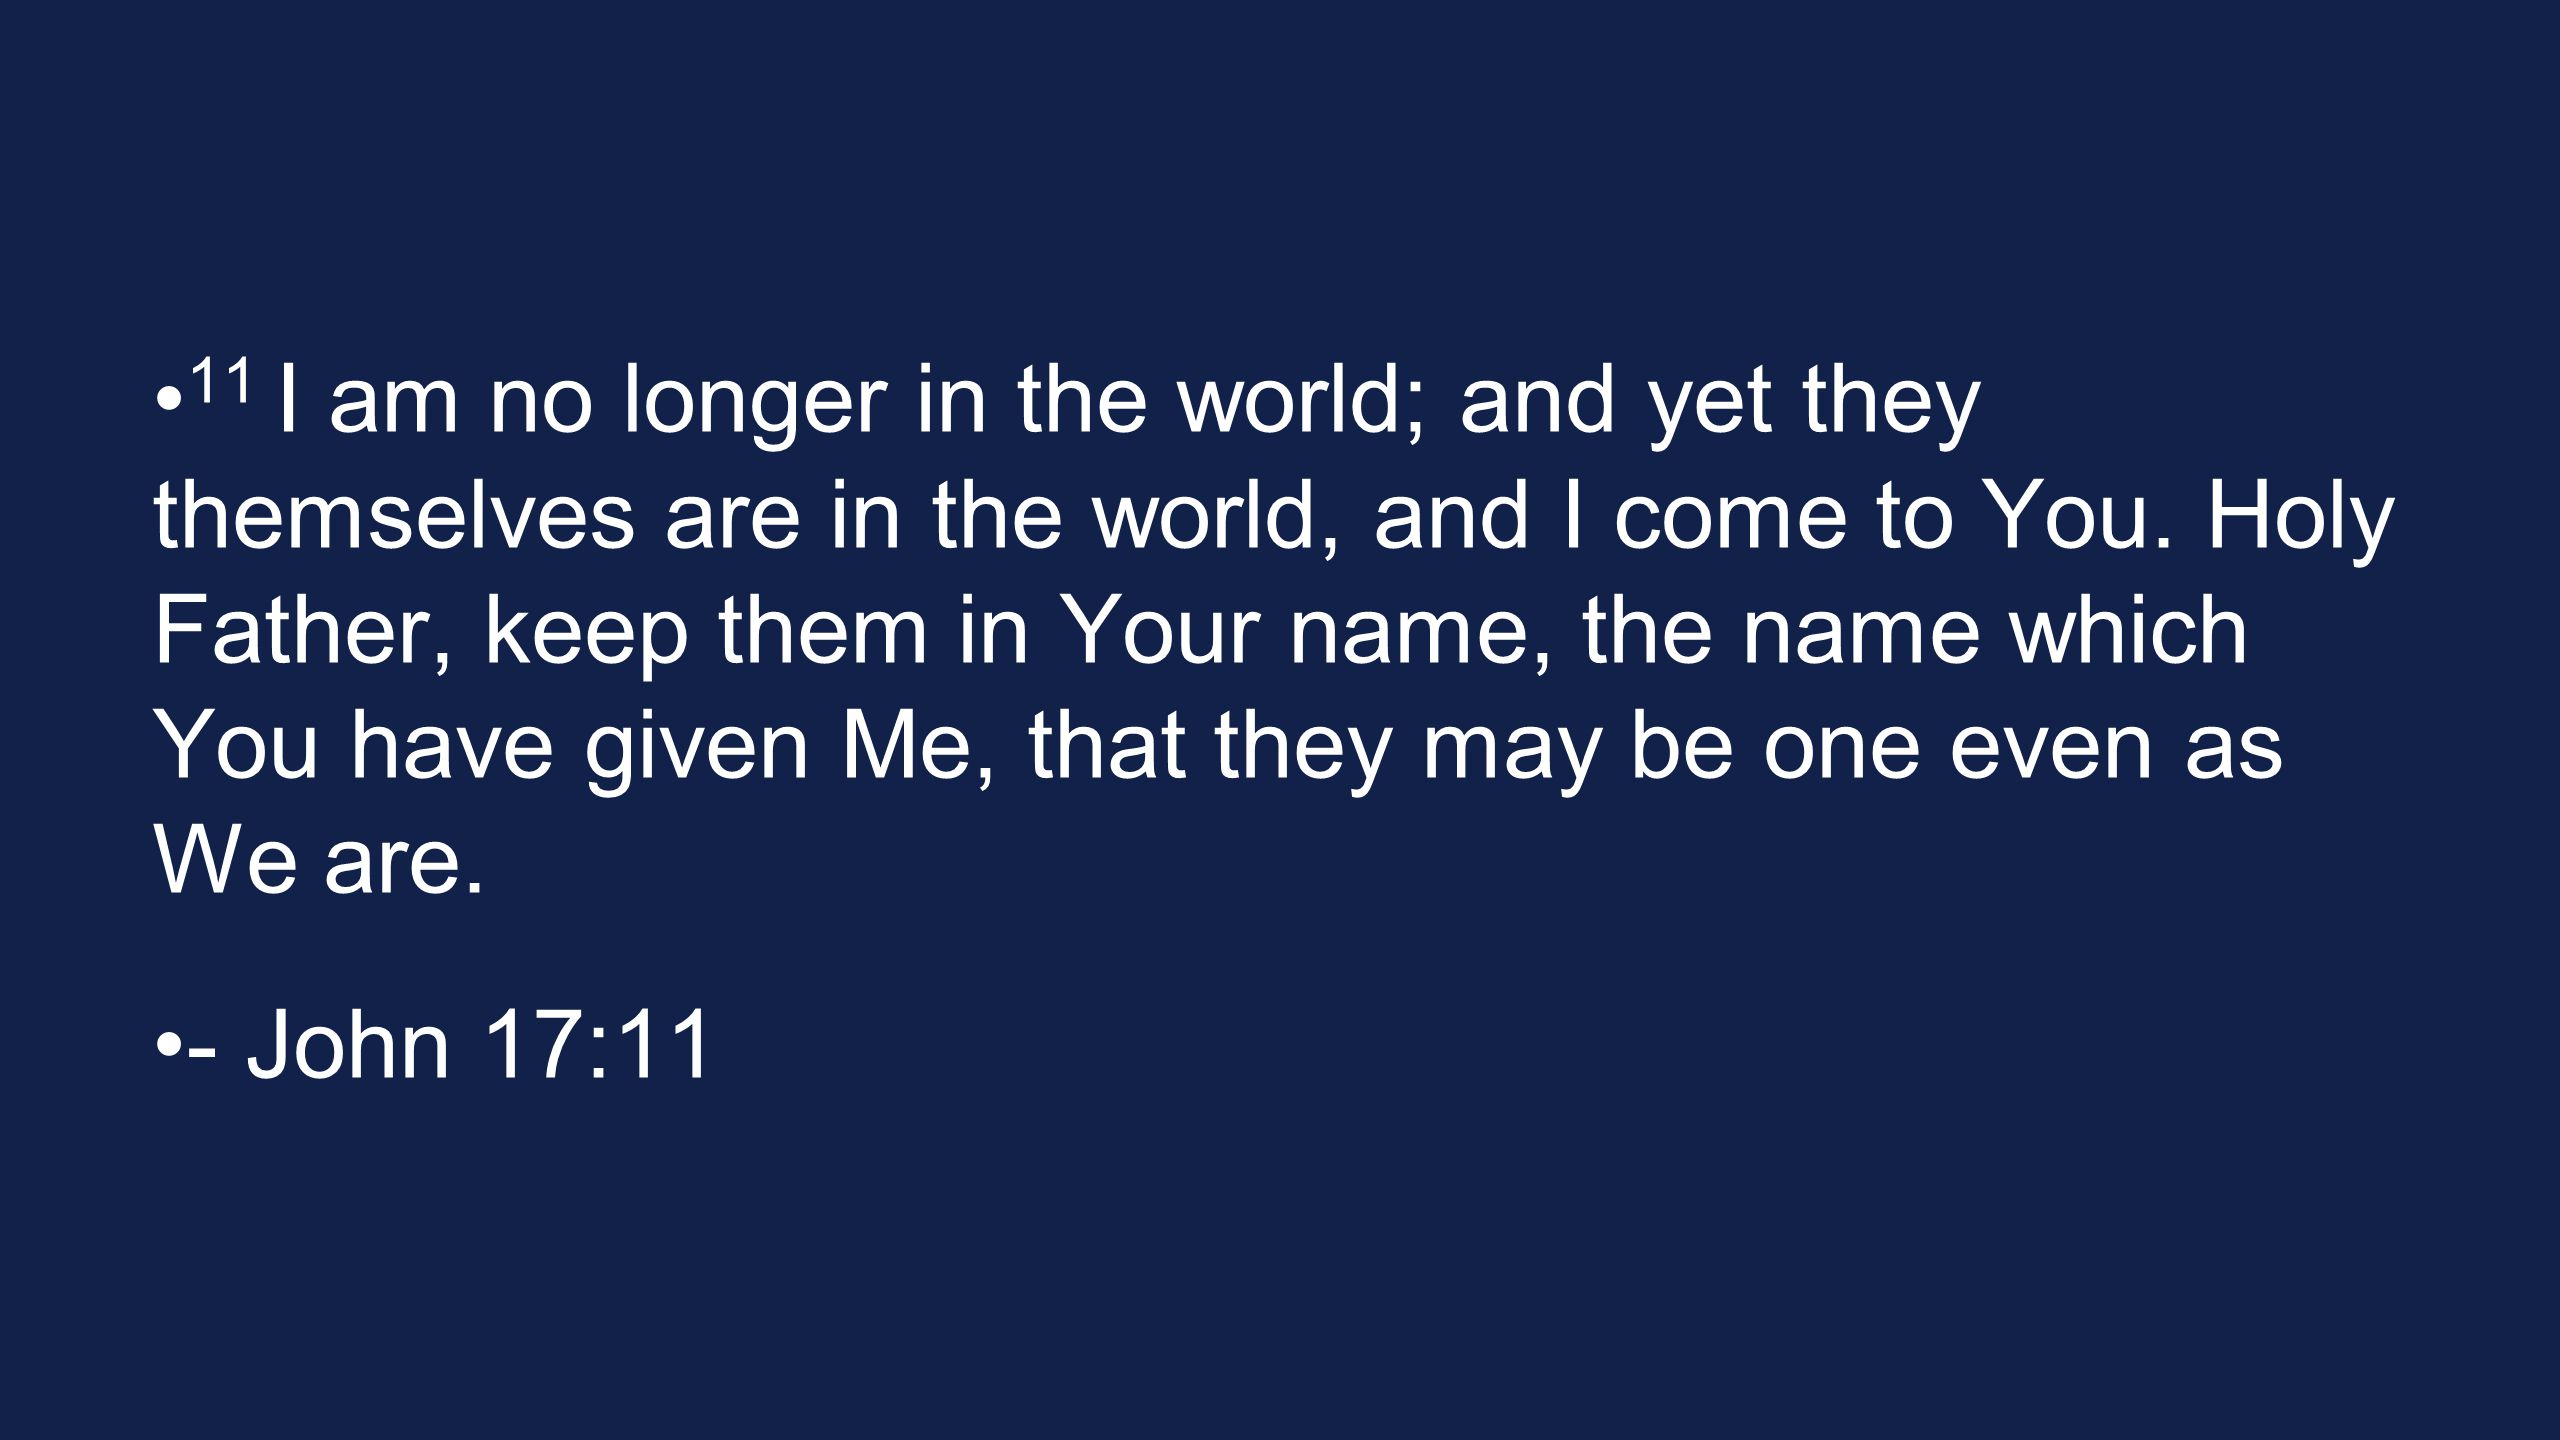 11 I am no longer in the world; and yet they themselves are in the world, and I come to You. Holy Father, keep them in Your name, the name which You h